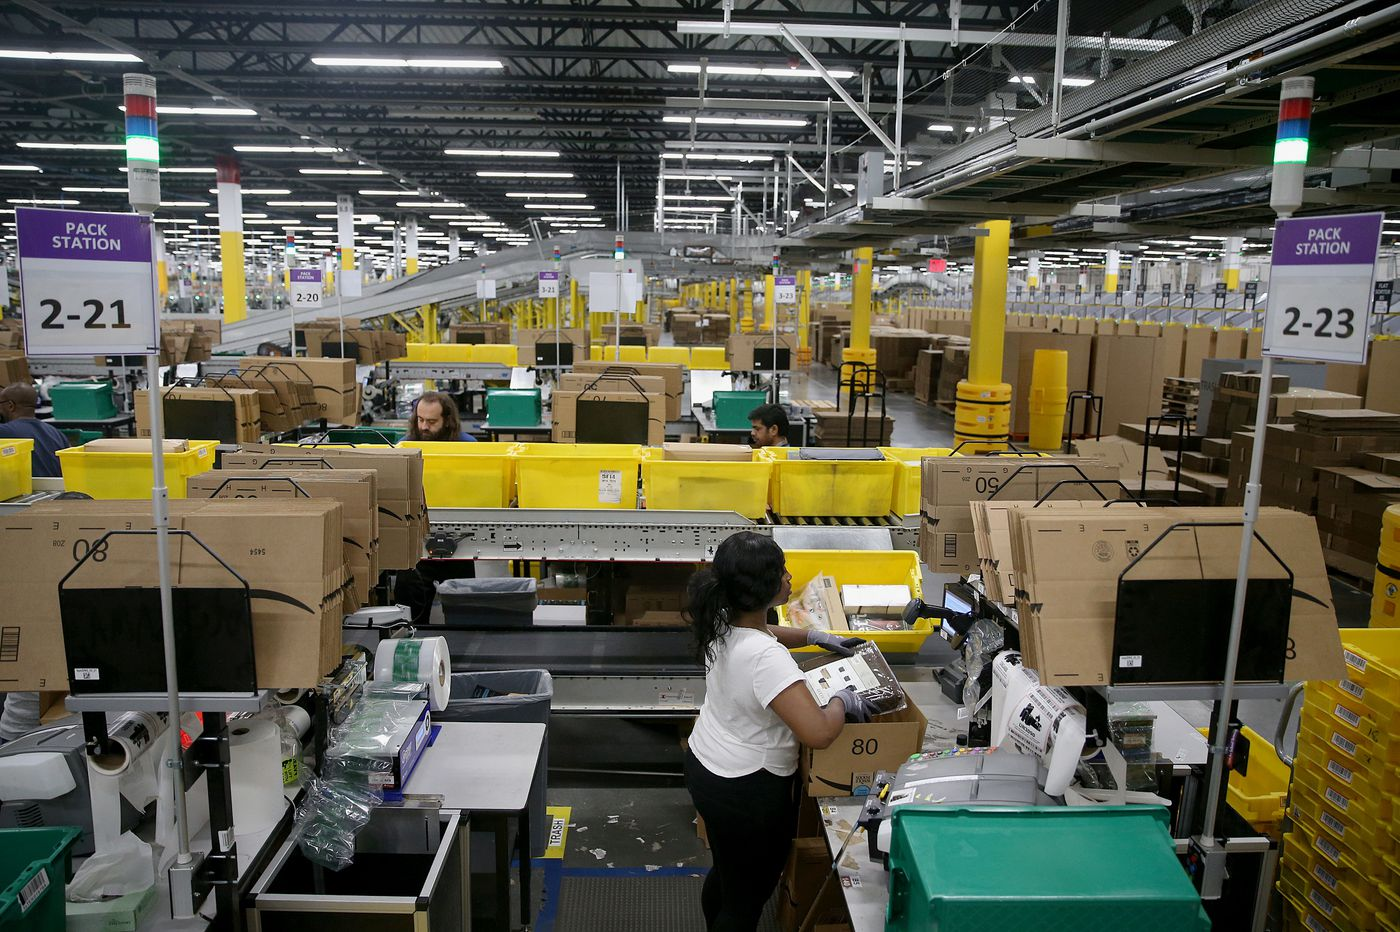 How humans and robots work side-by-side in Amazon fulfillment centers